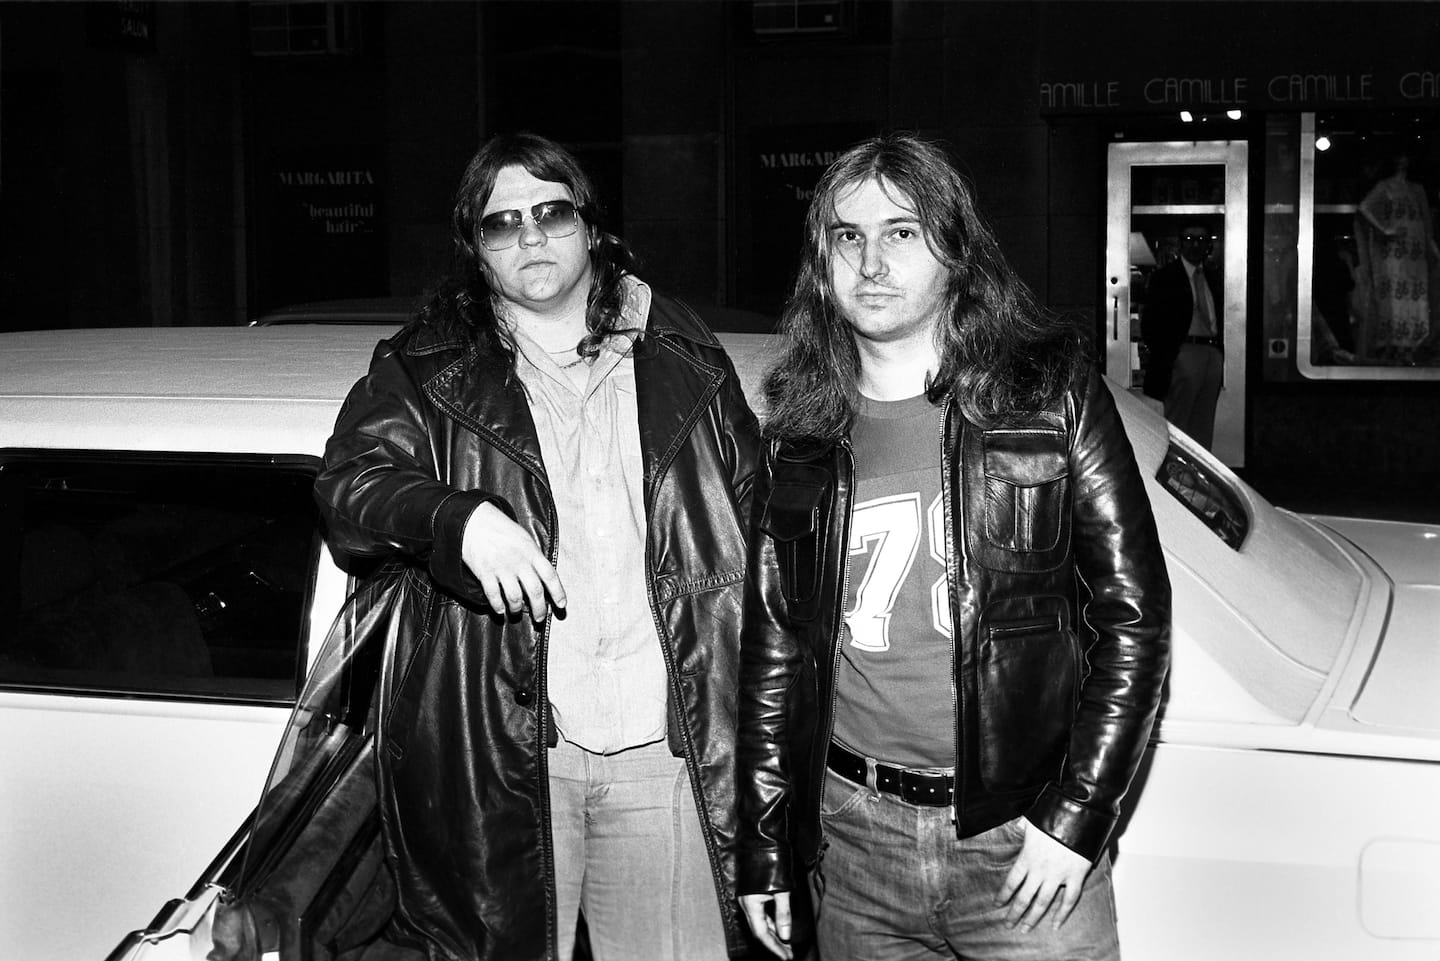 Jim Steinman, composer of hit records for Meat Loaf, dies at 73